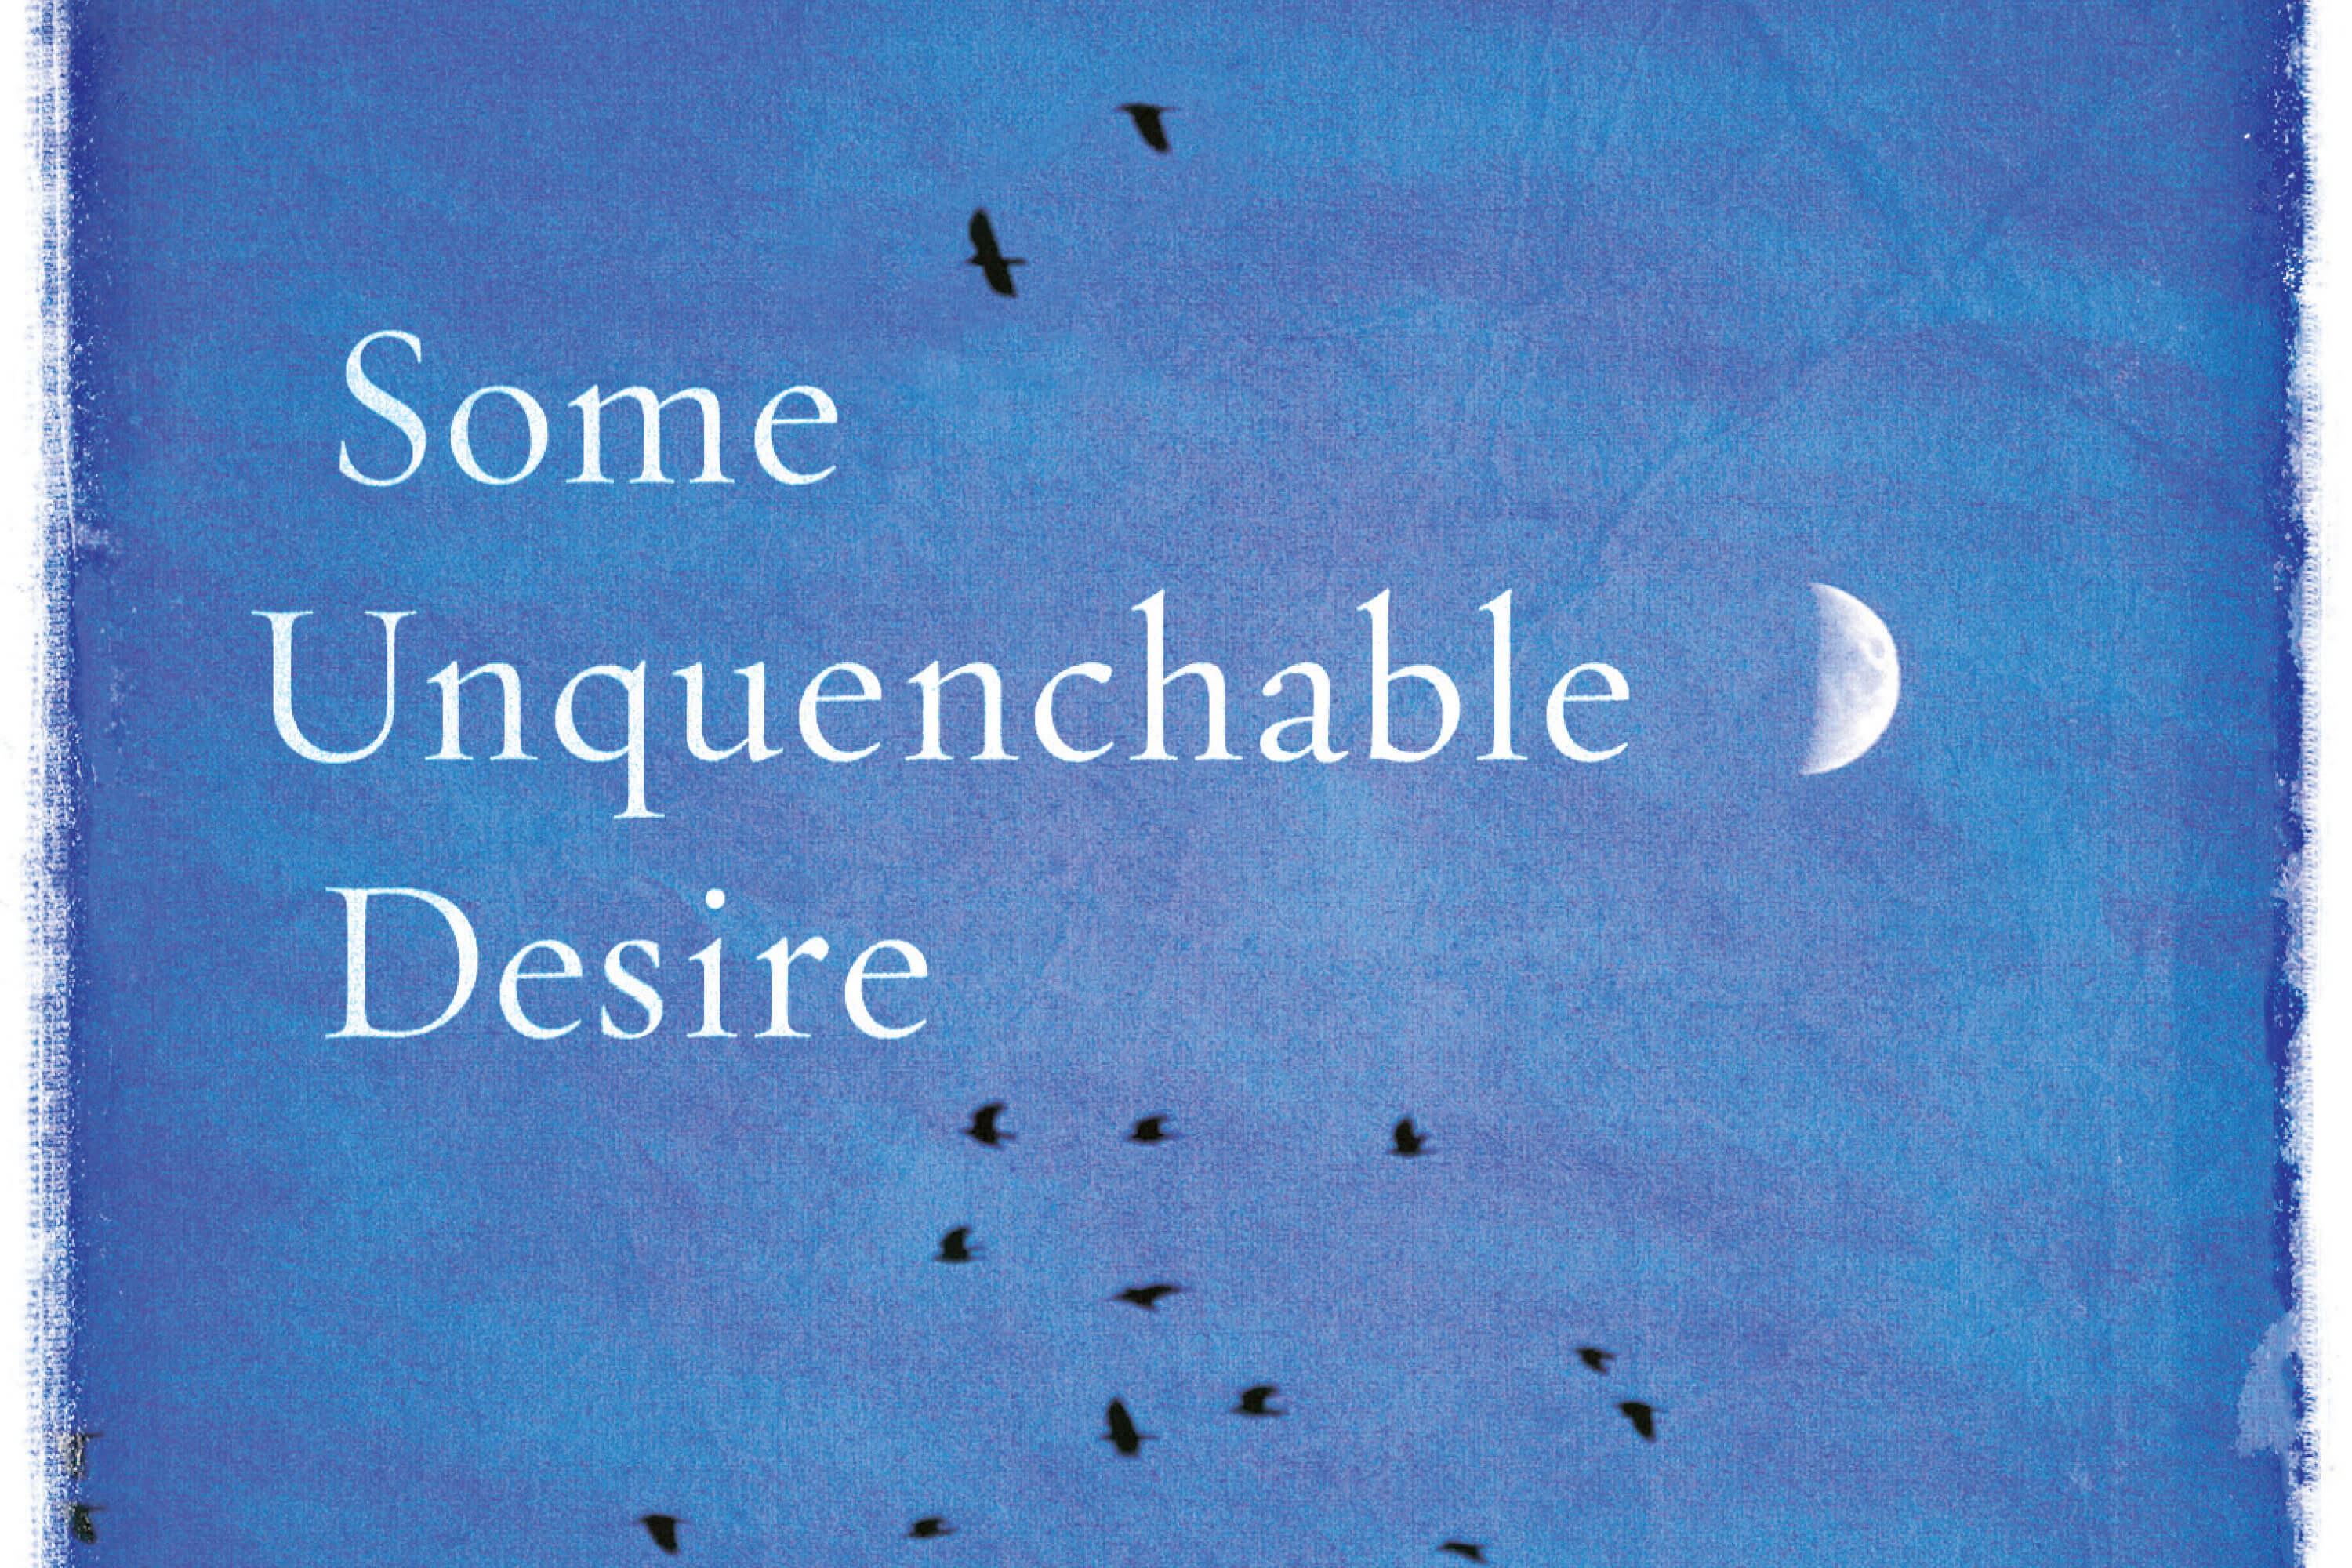 Bhartrihari the Poet | An Excerpt from Some Unquenchable Desire